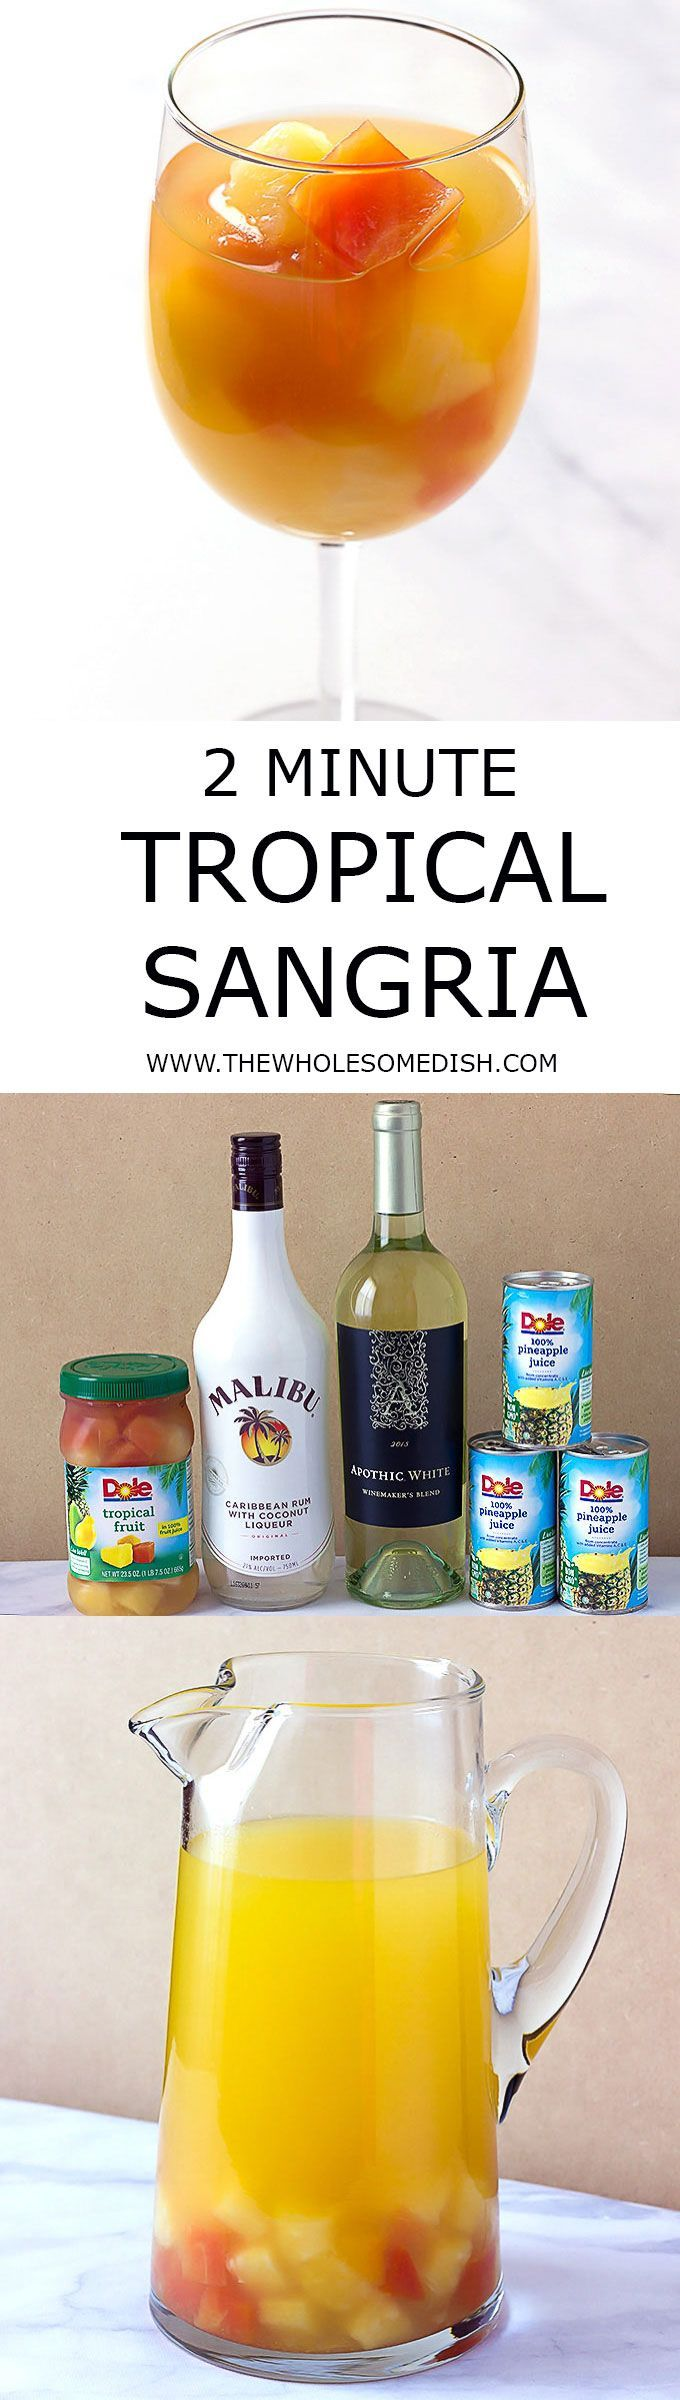 2 Minute Tropical Sangria - A simple tropical sangria recipe that can be made in minutes, made with Malibu coconut rum, pineapple juice, white wine, and mixed tropical fruit. via @afinks